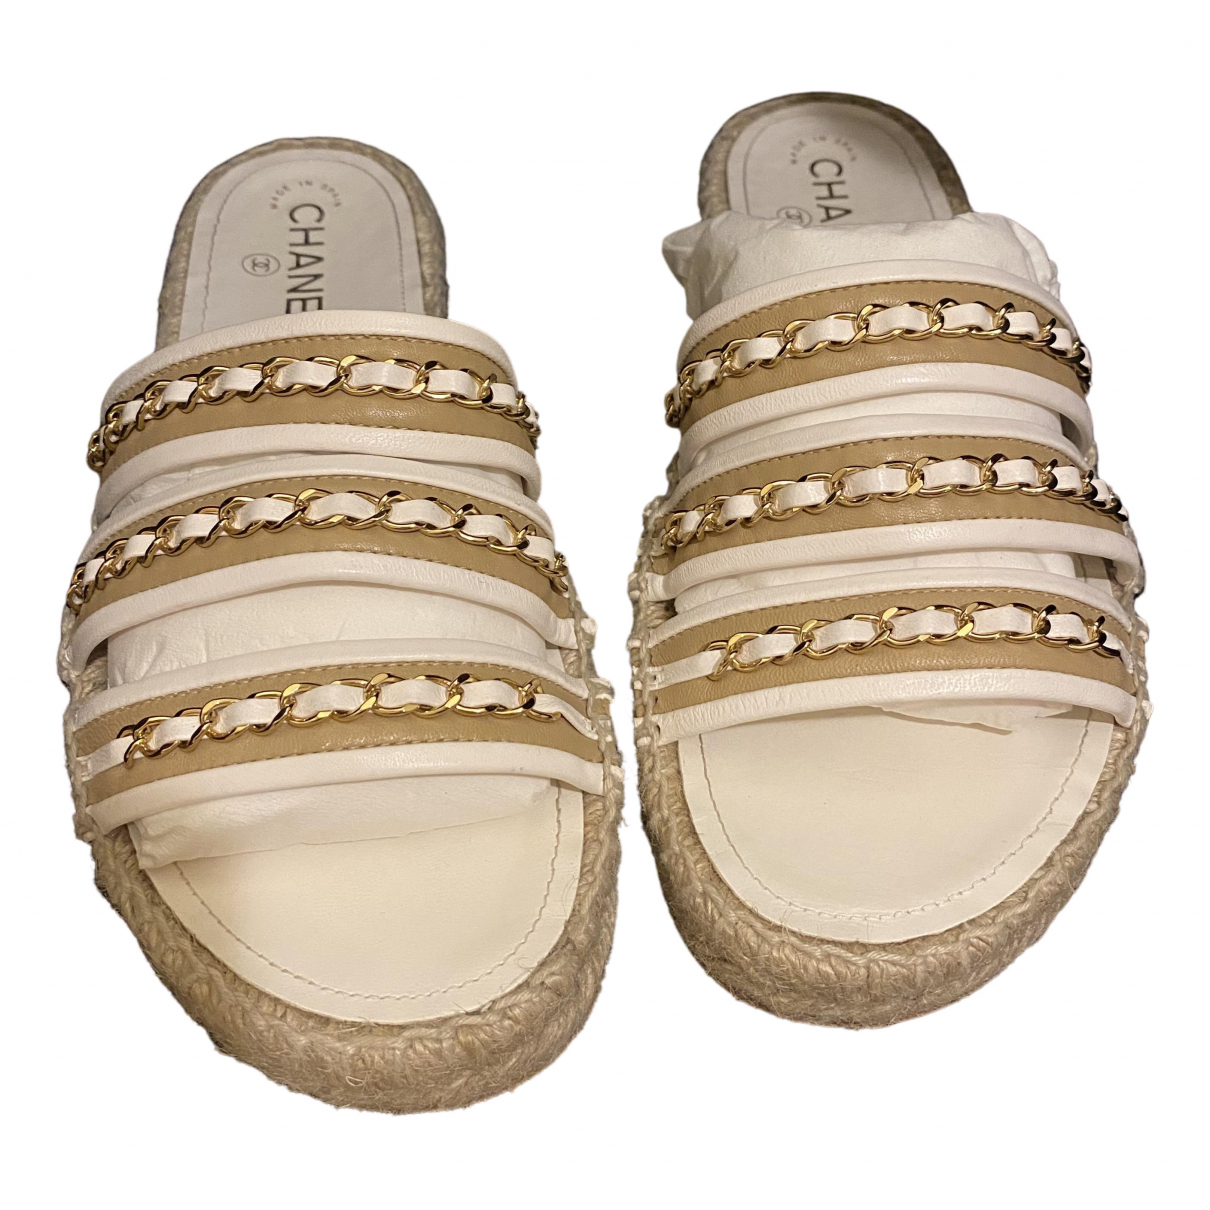 Chanel \N White Leather Mules & Clogs for Women 40 EU